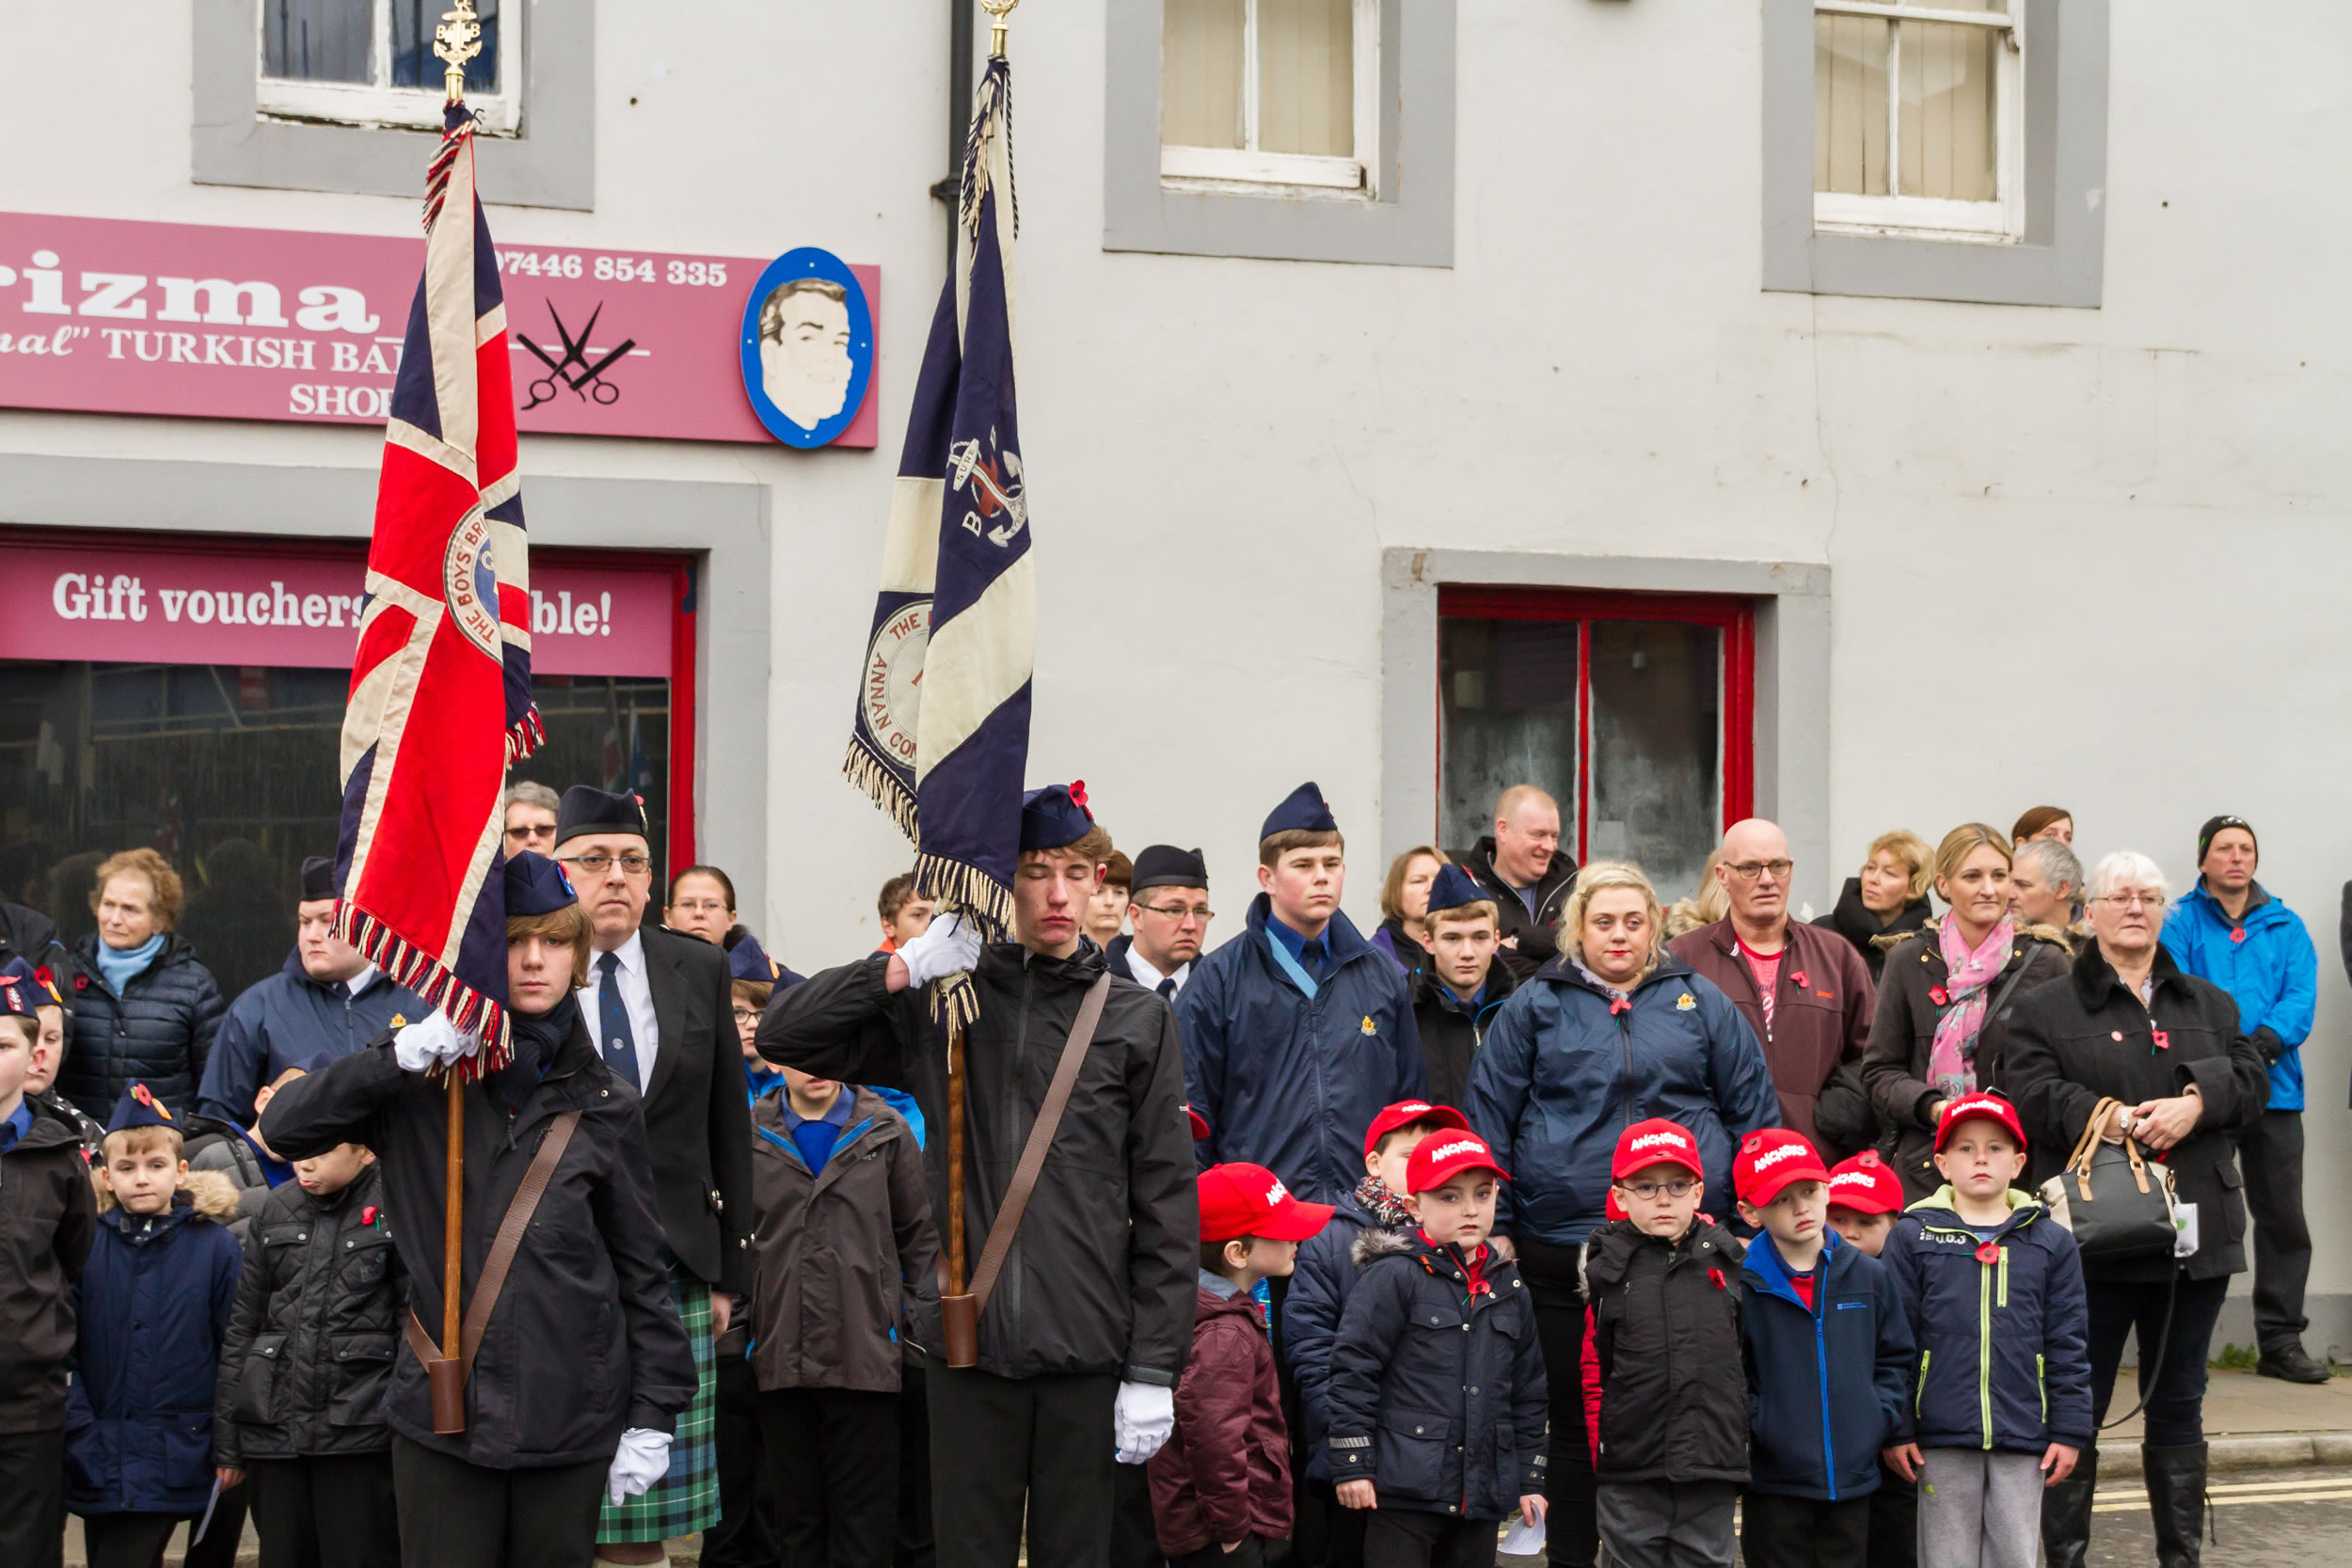 Boys Brigade at the Remembrance Day Parade in Annan on Sunday 13th of November 2016